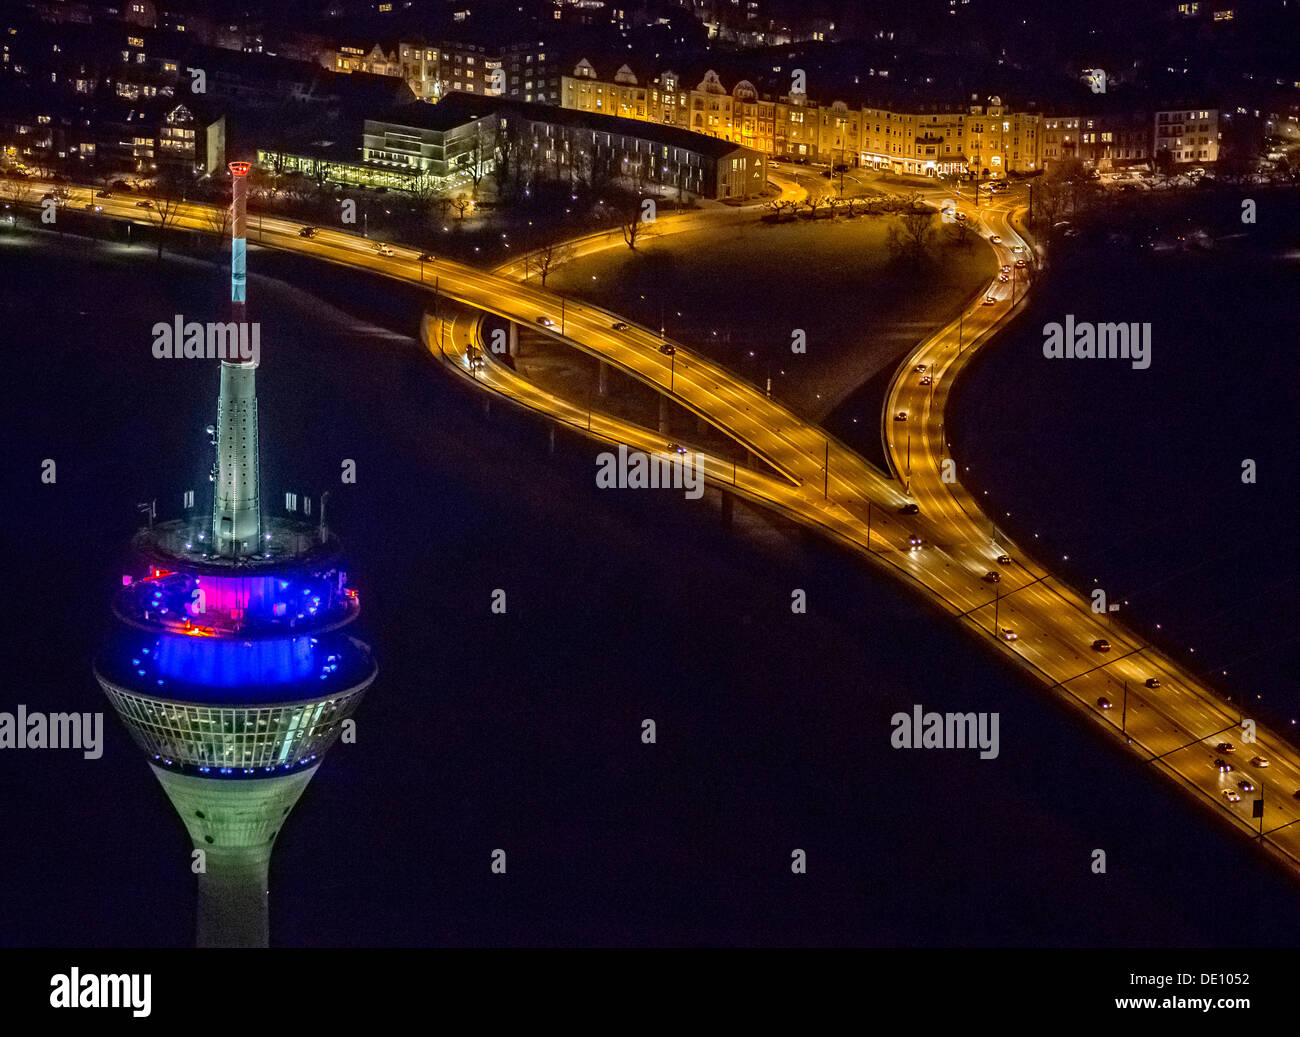 Aerial view, TV tower and the left bank of the Rhine River, Oberkassel, night scene, Duesseldorf, Rhineland - Stock Image